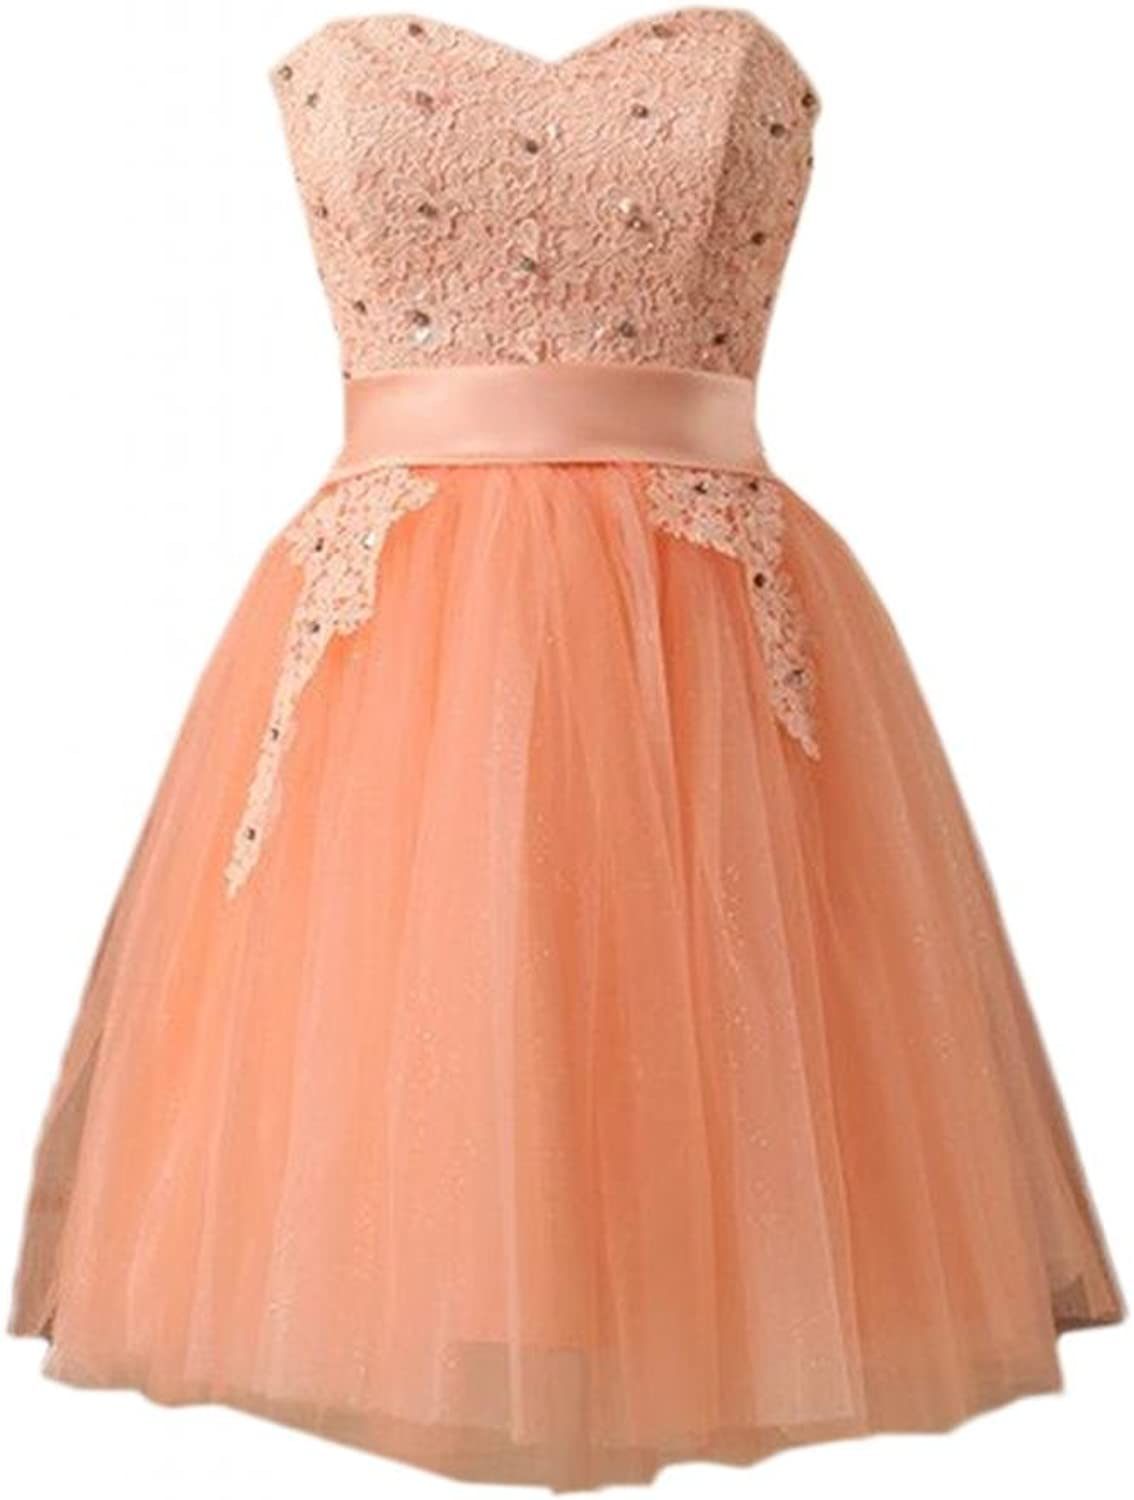 Angel Bride Sweet Mini Sweetheart Satin Tulle Lace Homecoming Dresses